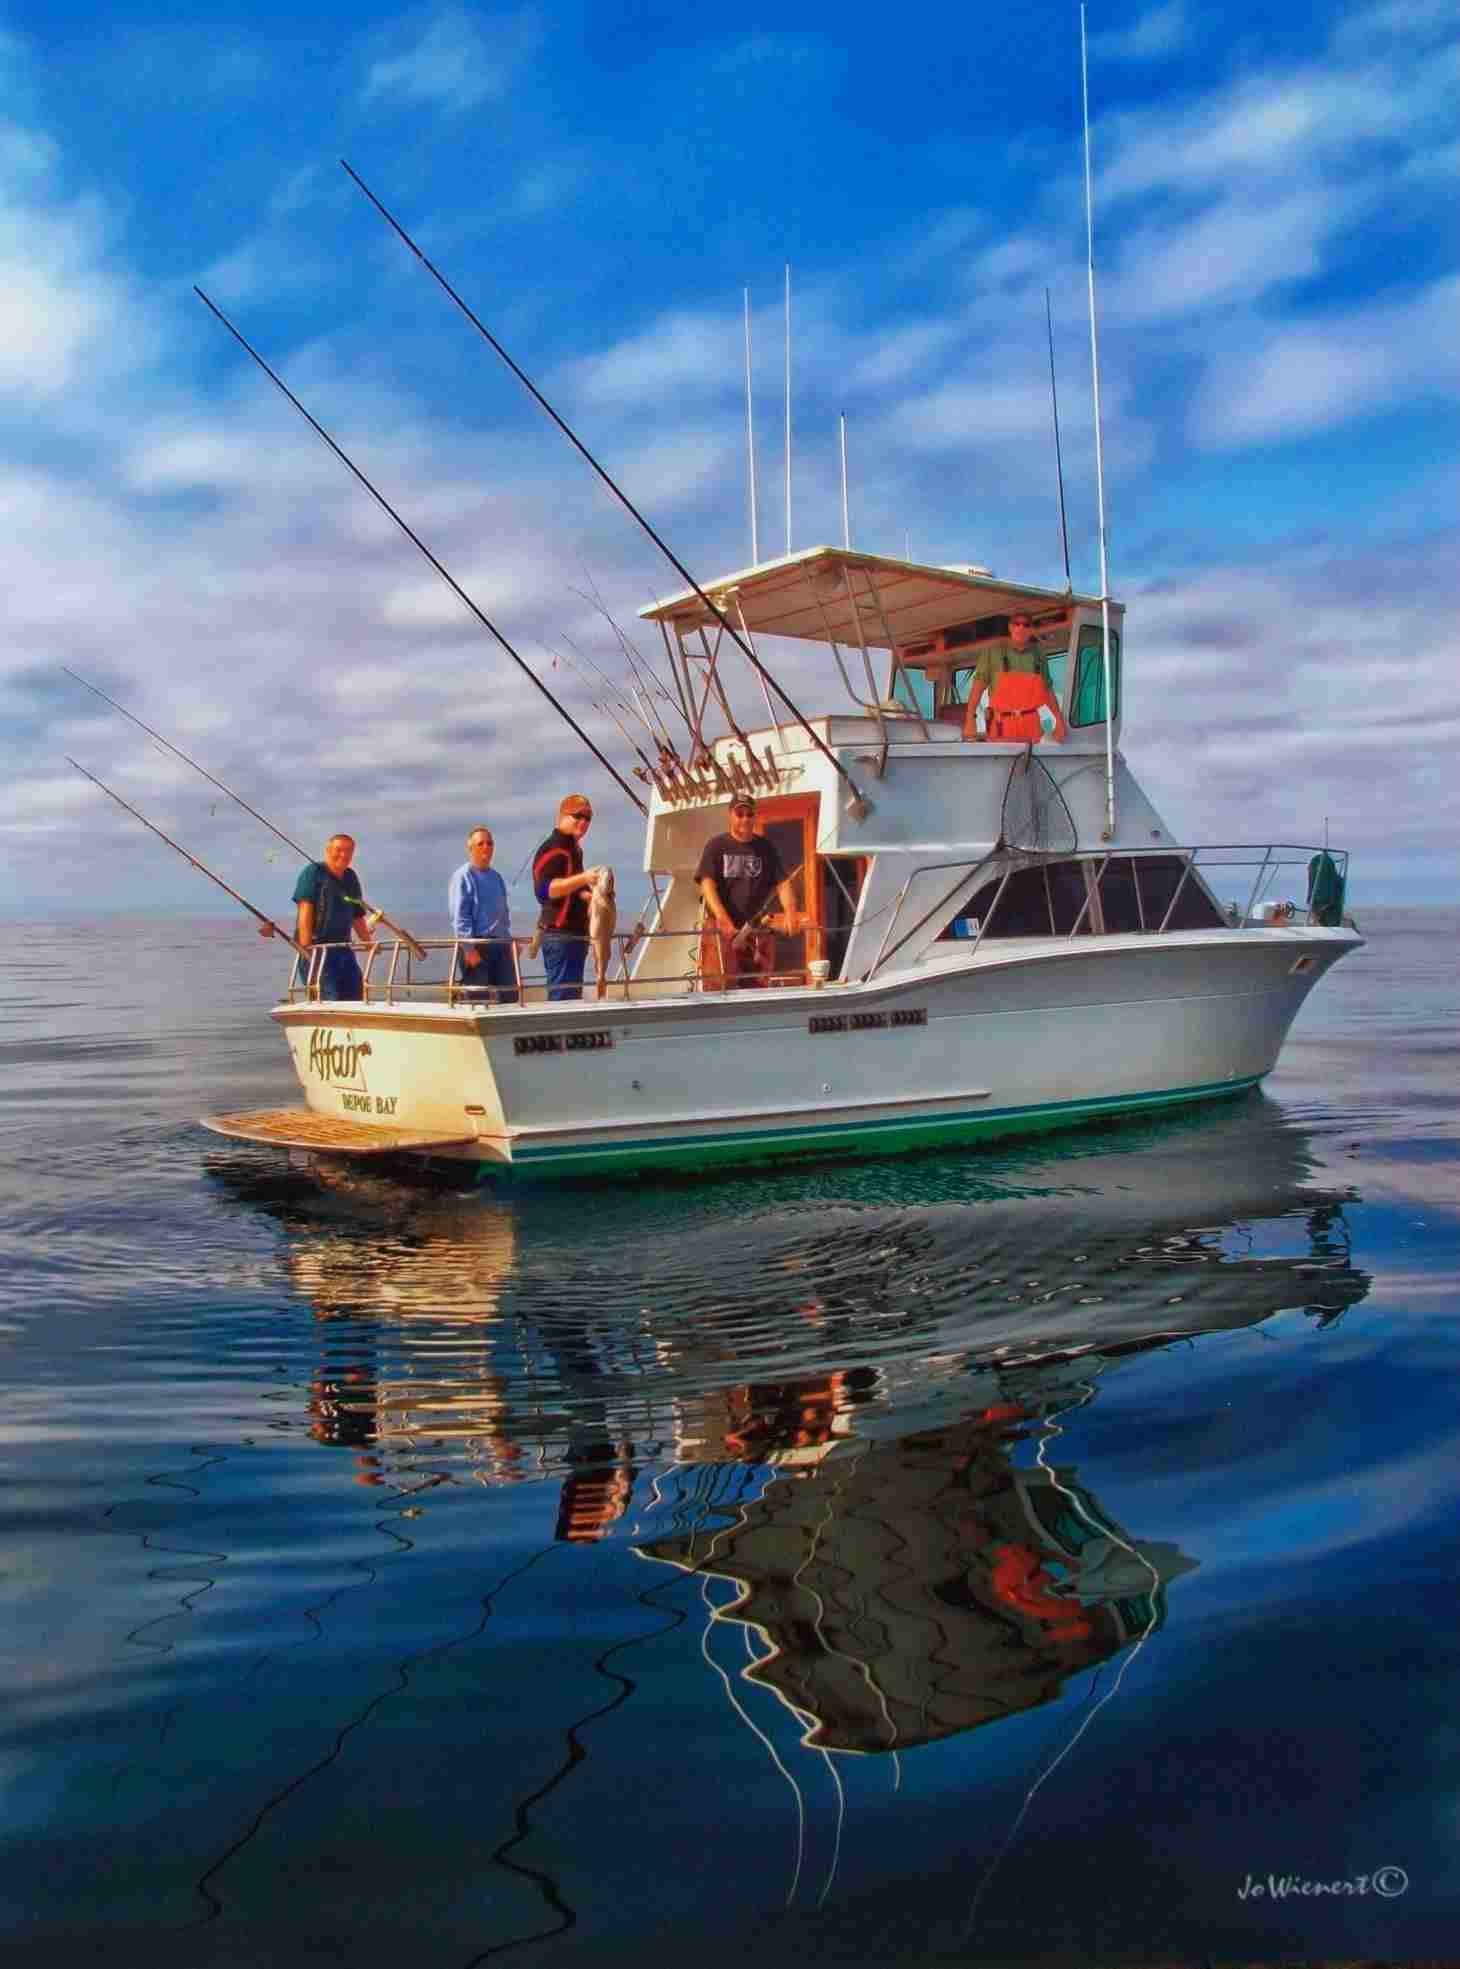 tuna fishing chartersAll Days are Like This at Dockside (well, almost)